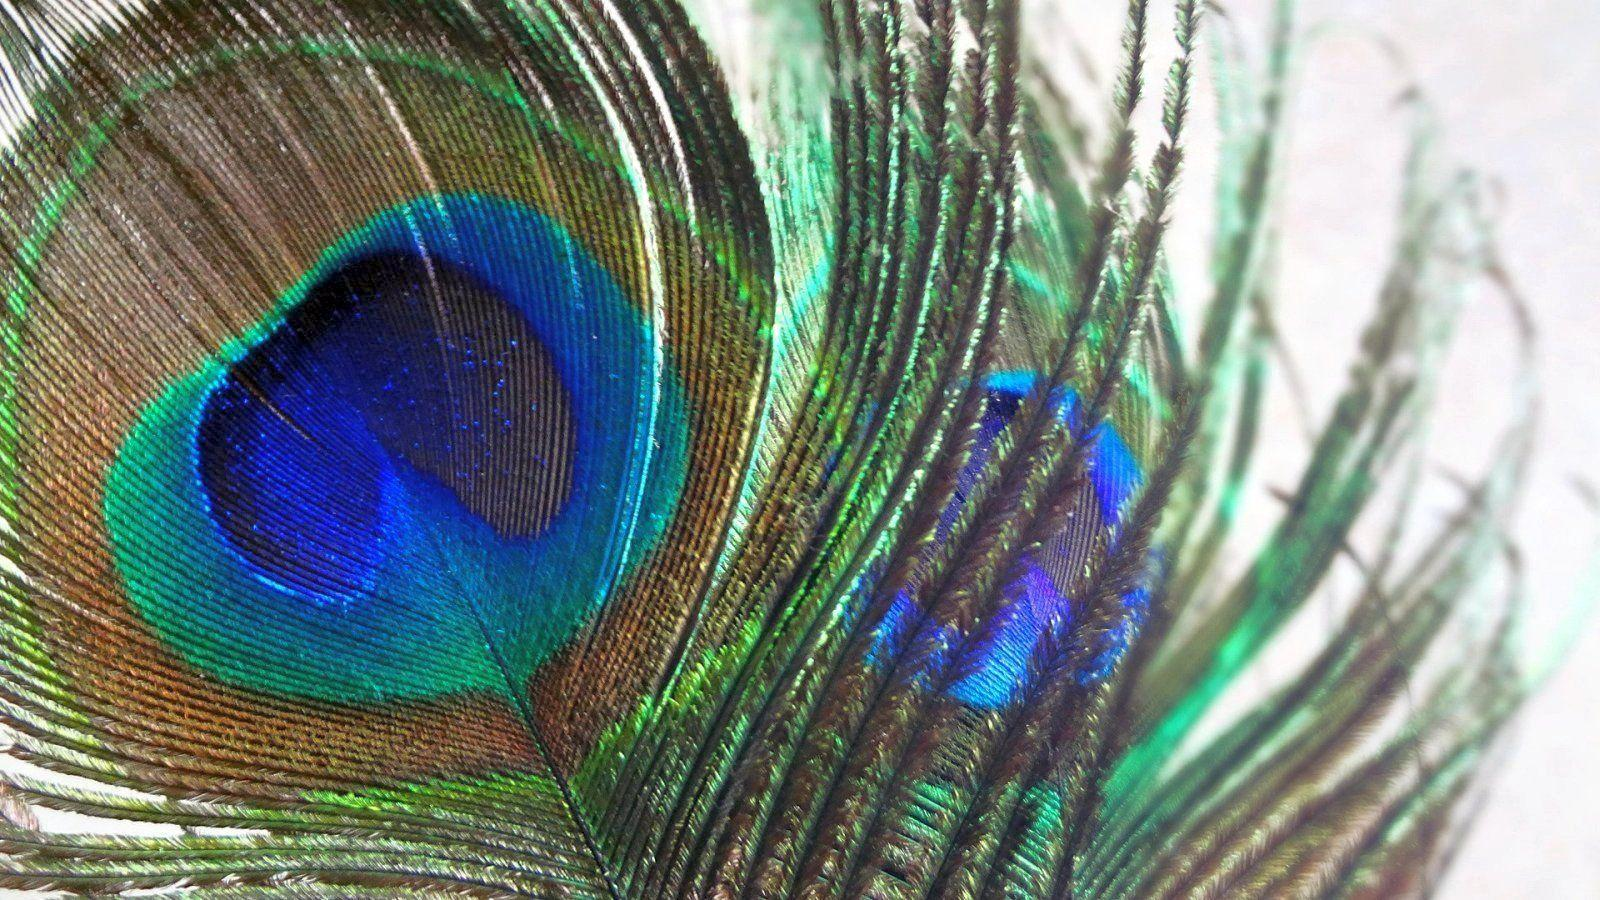 Wallpapers Of Peacock Feathers HD 2016 1600x900